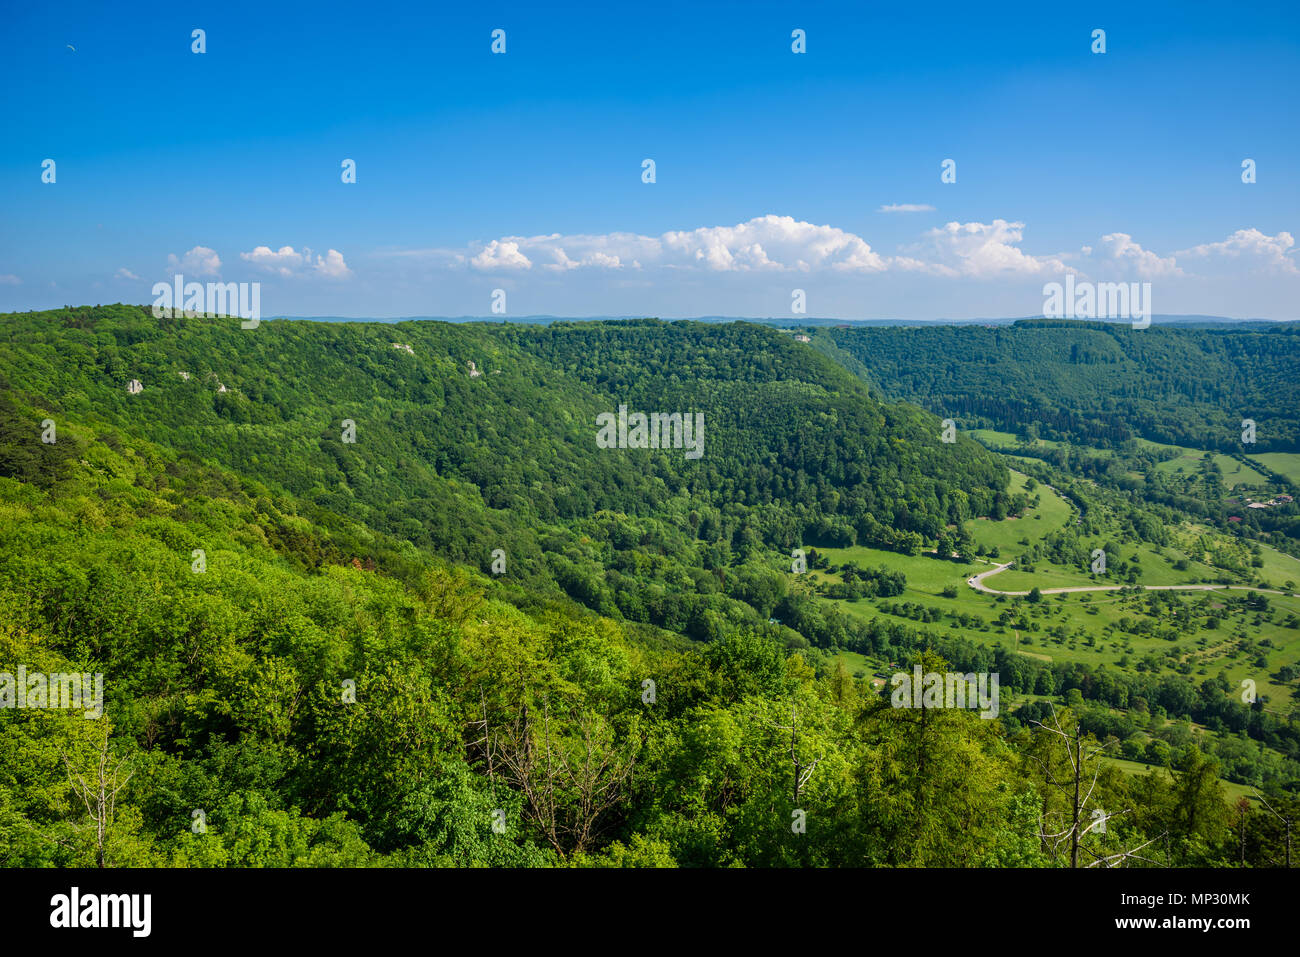 Landscape at the castle Hohenneuffen at Beuren, Swabian Alb, Germany - Stock Image